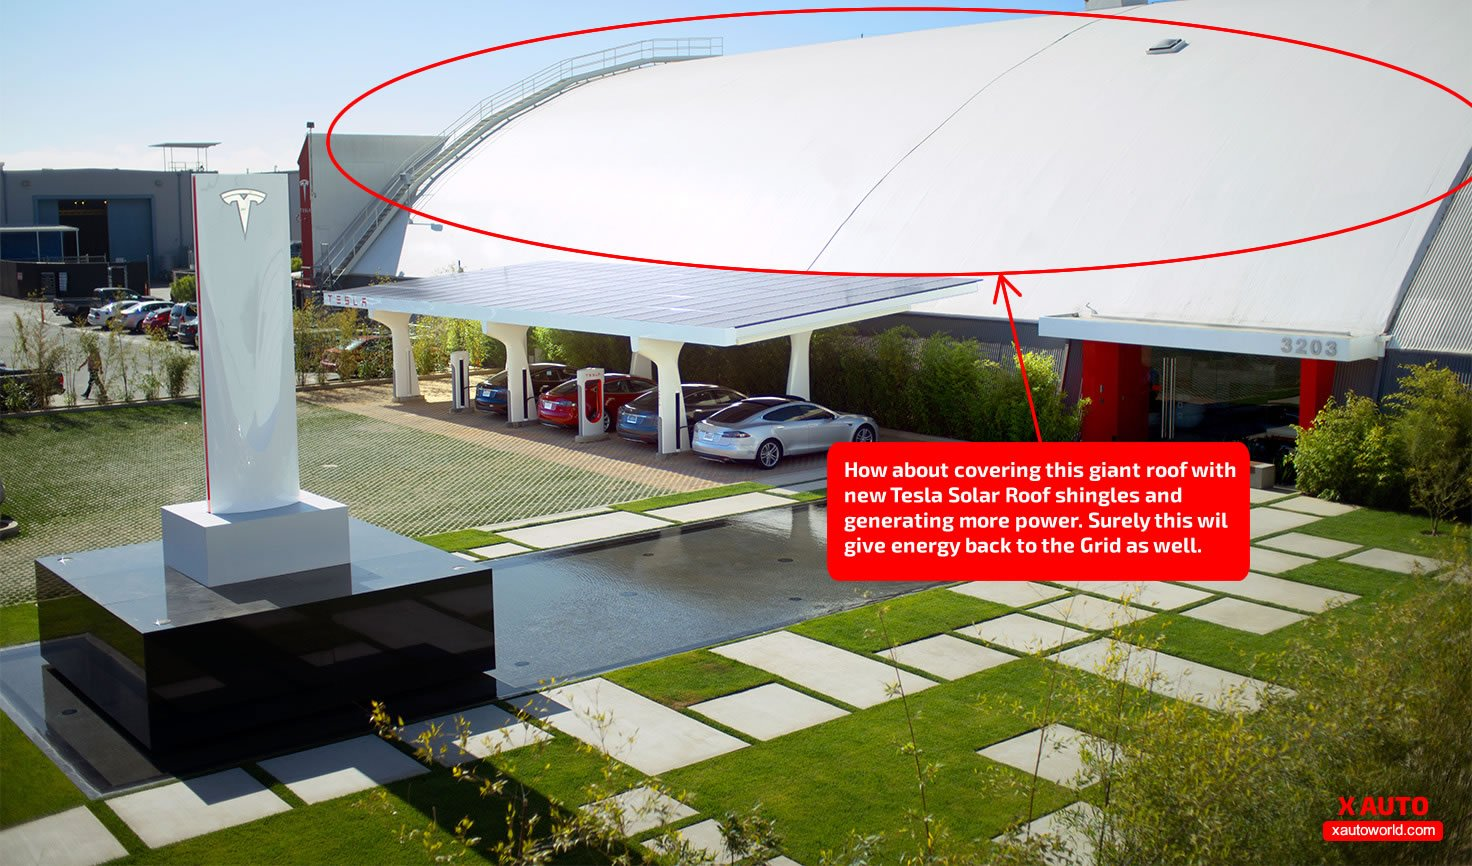 hawthorne-supercharger-idea-roof-shingles.jpg